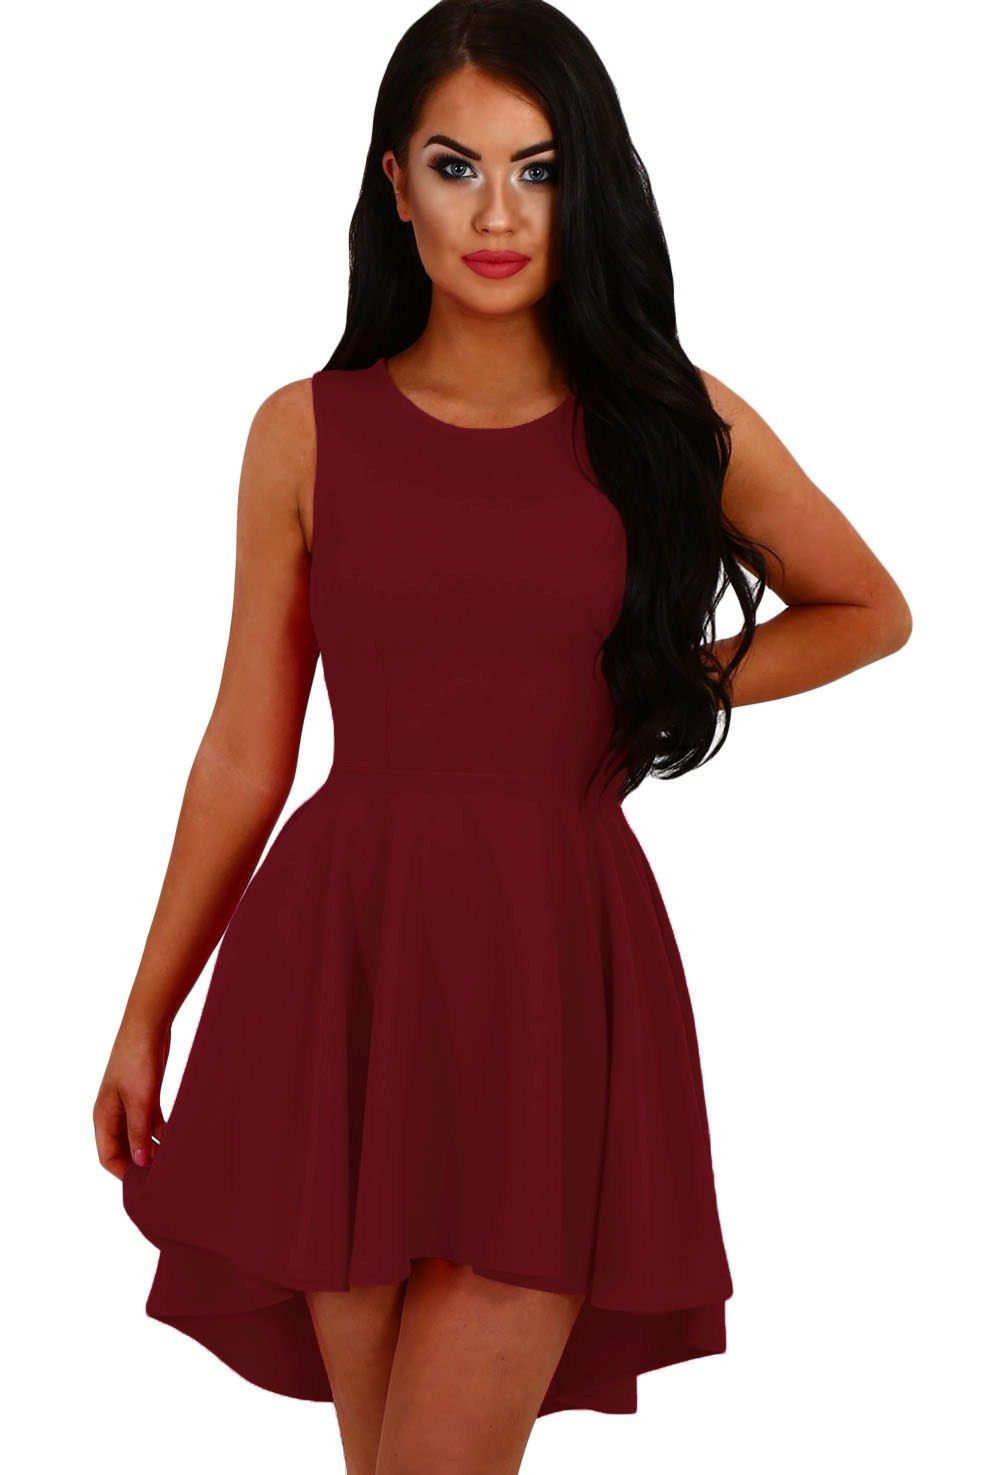 Robe Patineuse Soiree De Cocktail Bordeaux Courte Devant Longue Derriere Pas Cher Www Modebuy Com Mod Sleeveless Skater Dress Skater Dress Flared Skater Dress